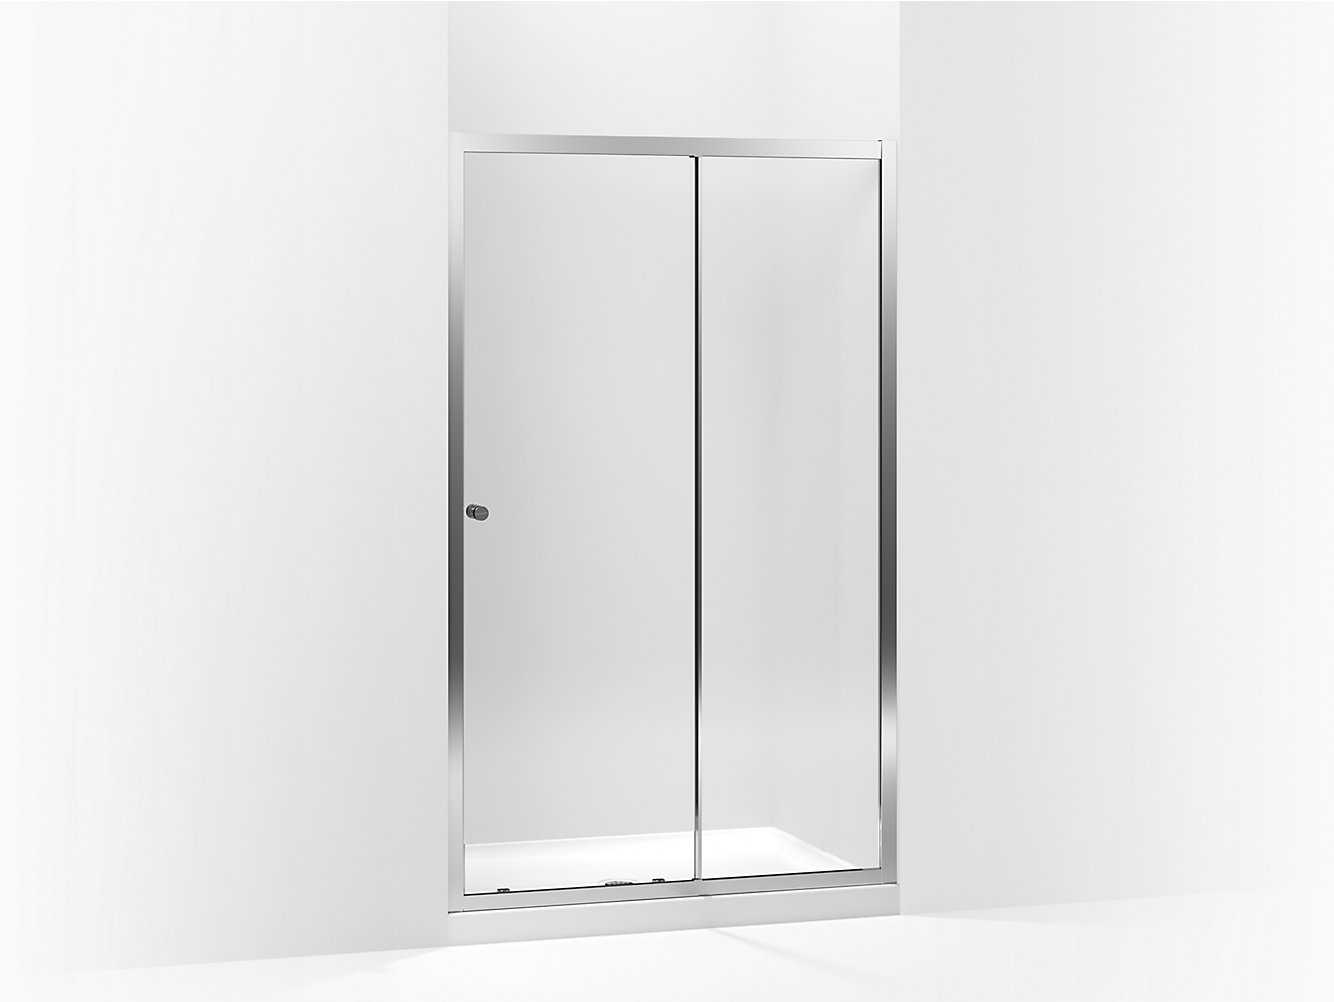 Whiston Frameless Sliding Shower Door 48 X 74 78 572106 48s G05